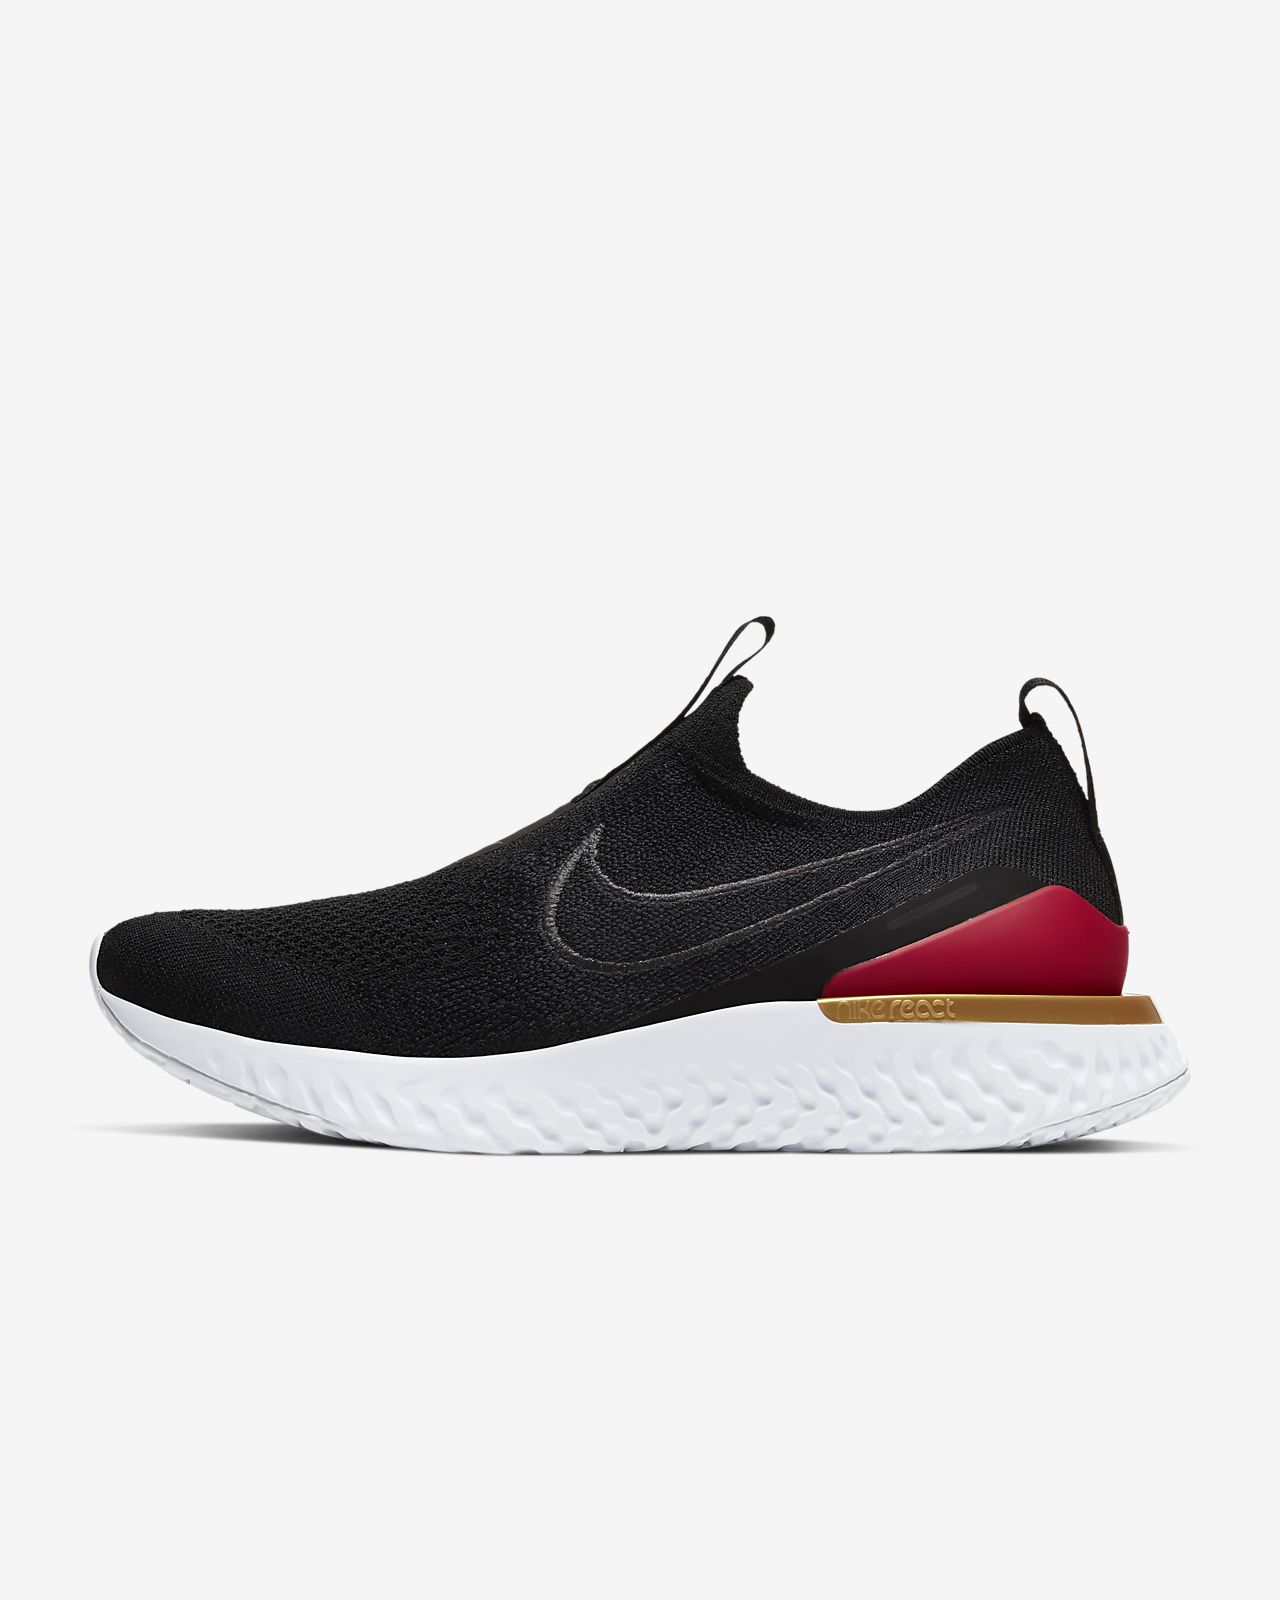 Damskie buty do biegania Nike Epic Phantom React Flyknit Icon Clash